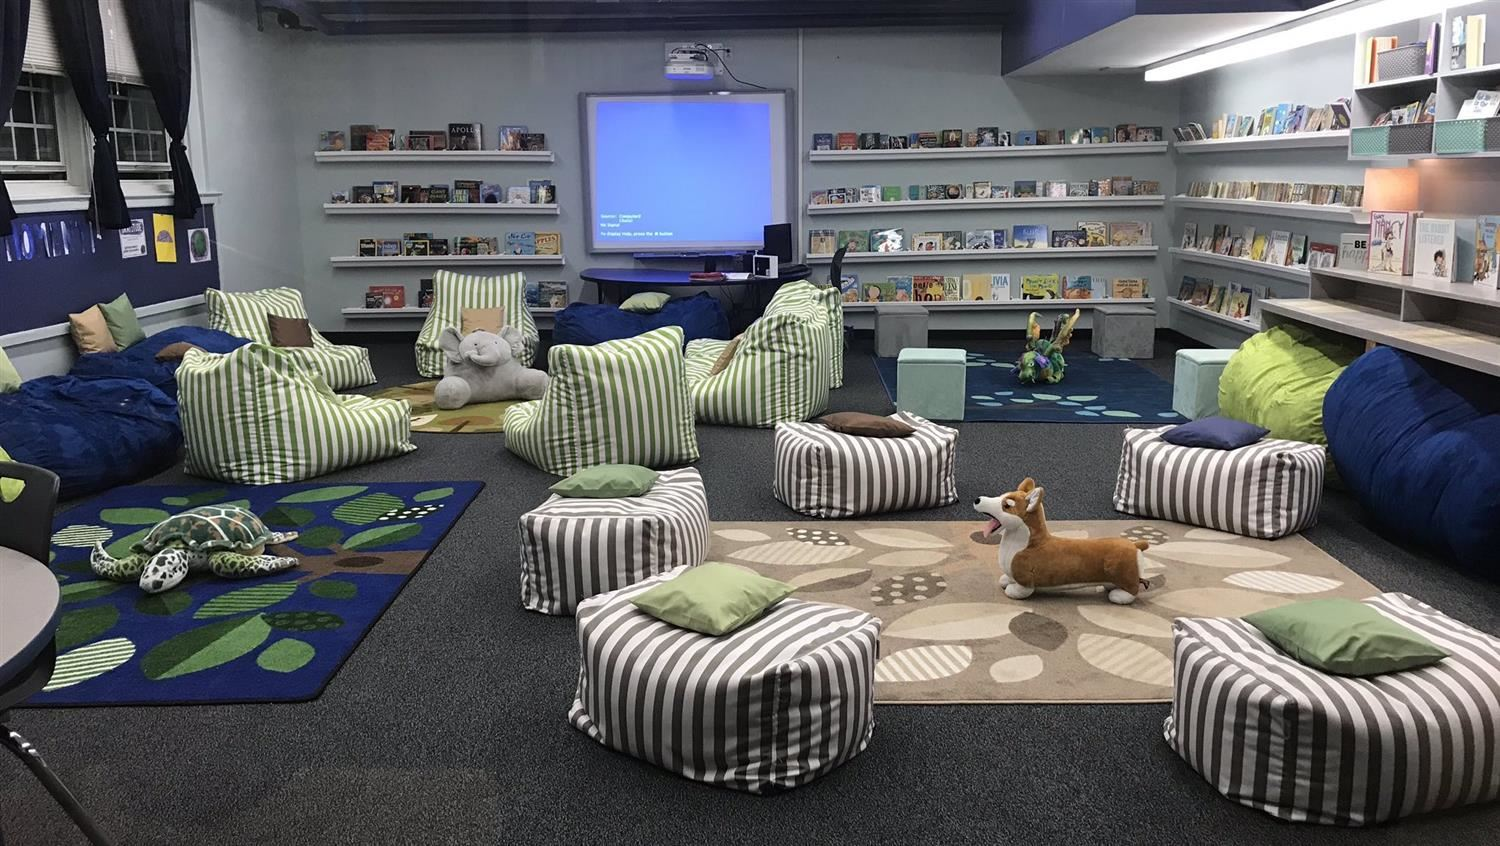 A look inside Port Monmouth's Koala Cove shows comfy chairs, stuffed animals, and shelves filled with books.